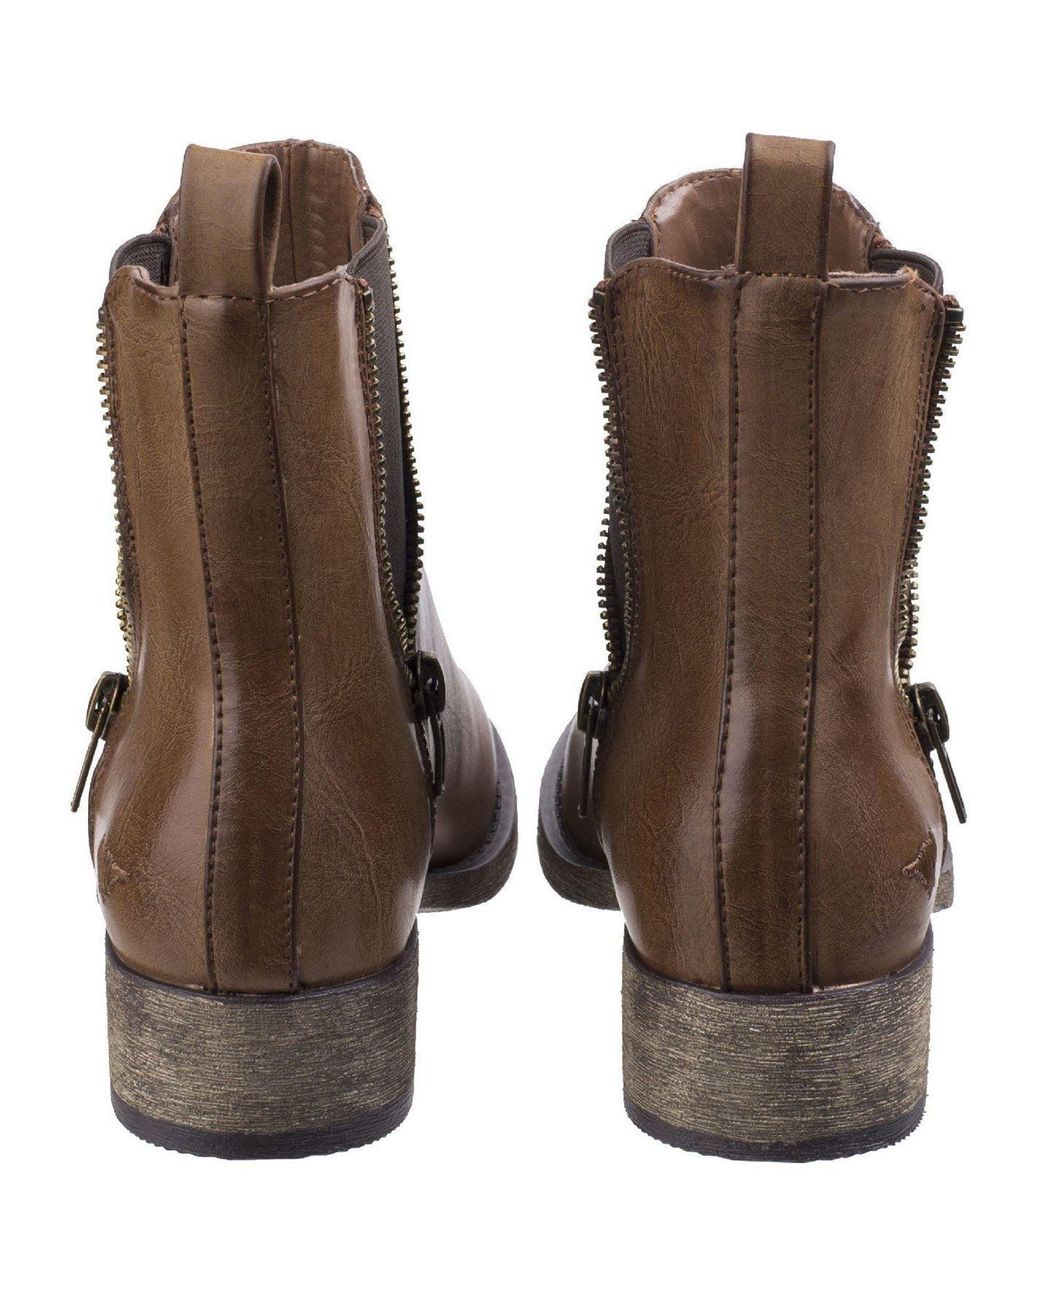 Rocket Dog CAMILLA Ladies Womens Dual Gusset Comfort High Ankle Chelsea Boots